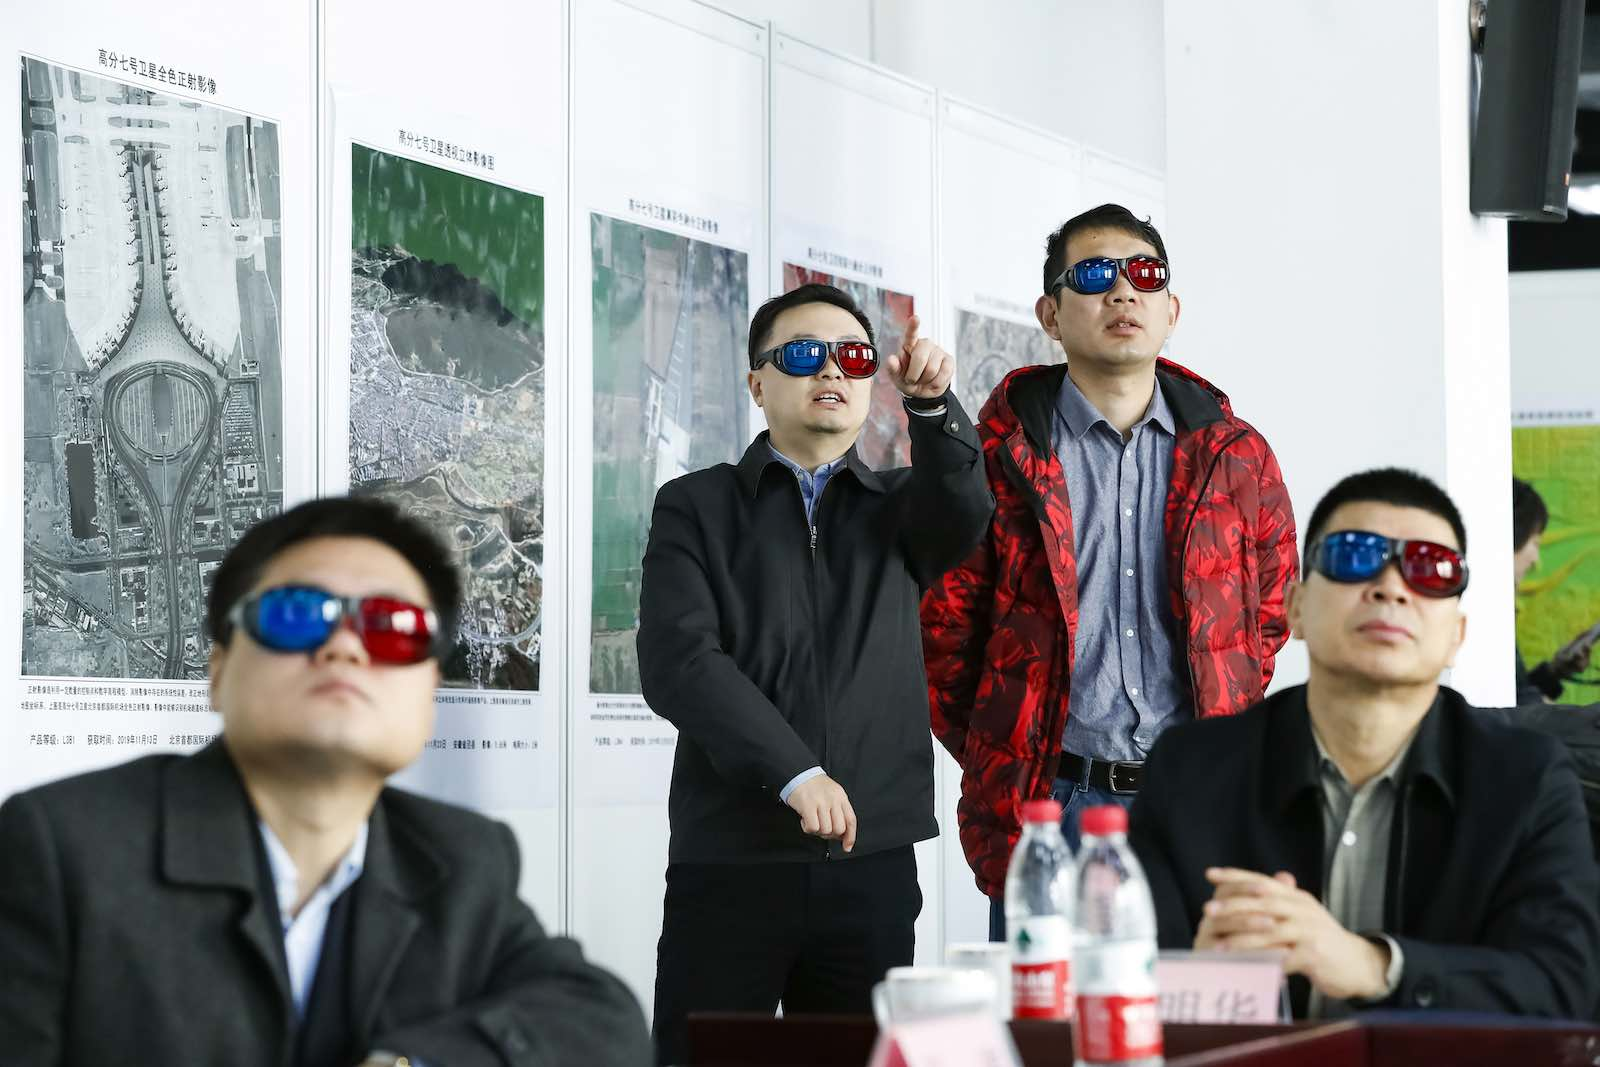 Watching 3-D images during the launching ceremony of the Gaofen-7 Earth observation satellite in Beijing, 10 December 2019 (Shen Bohan/Xinhua via Getty Images)